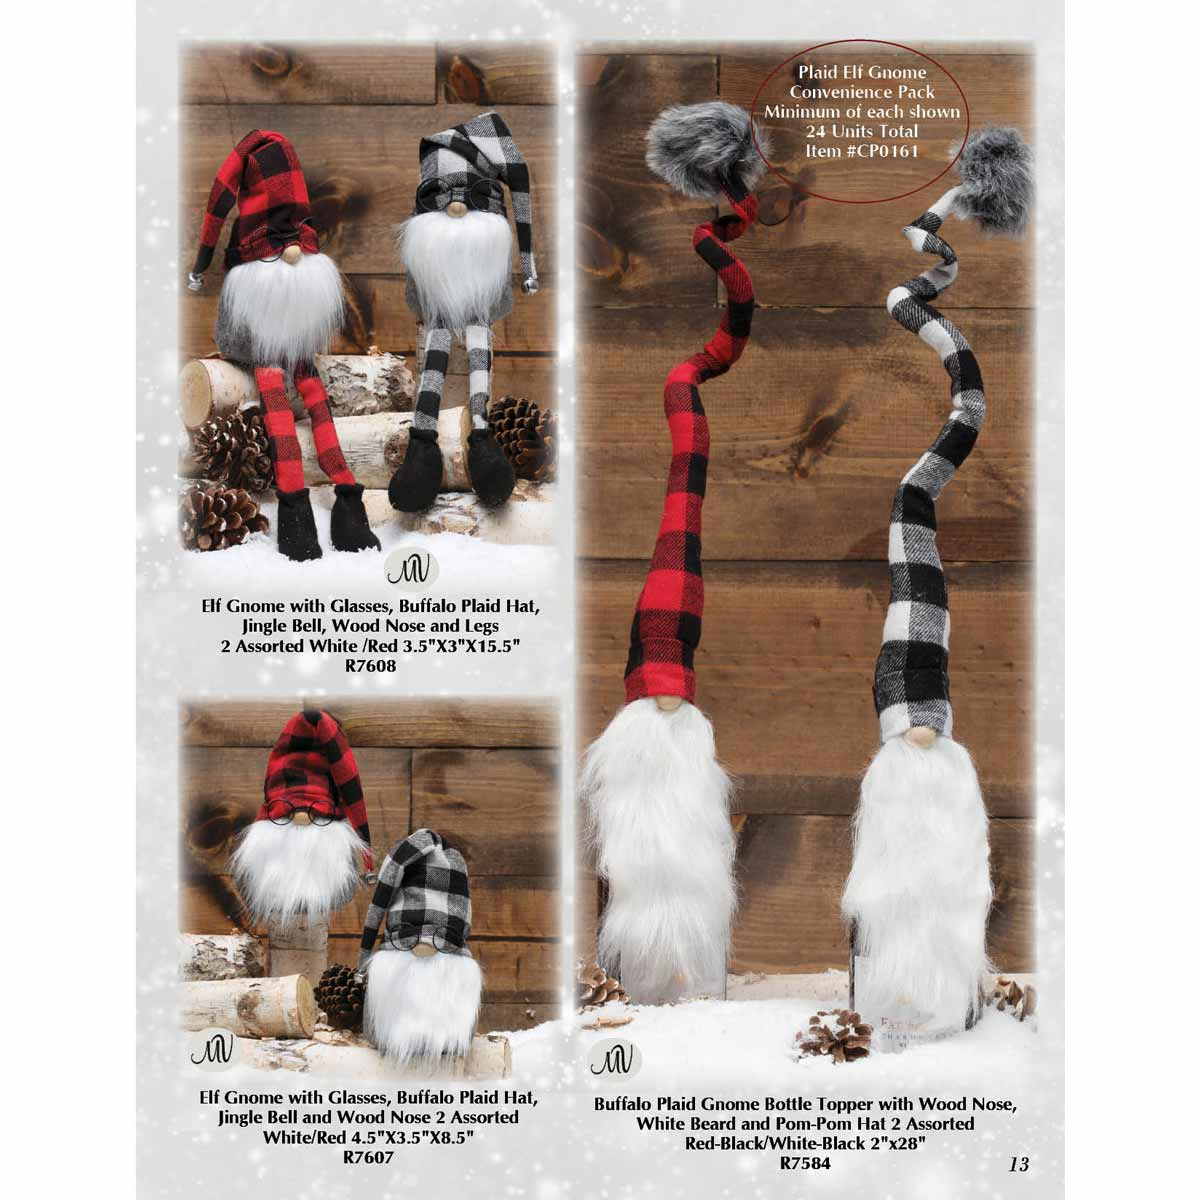 BUFFALO PLAID ELF GNOME CONVENIENCE PACK 24 UNITS